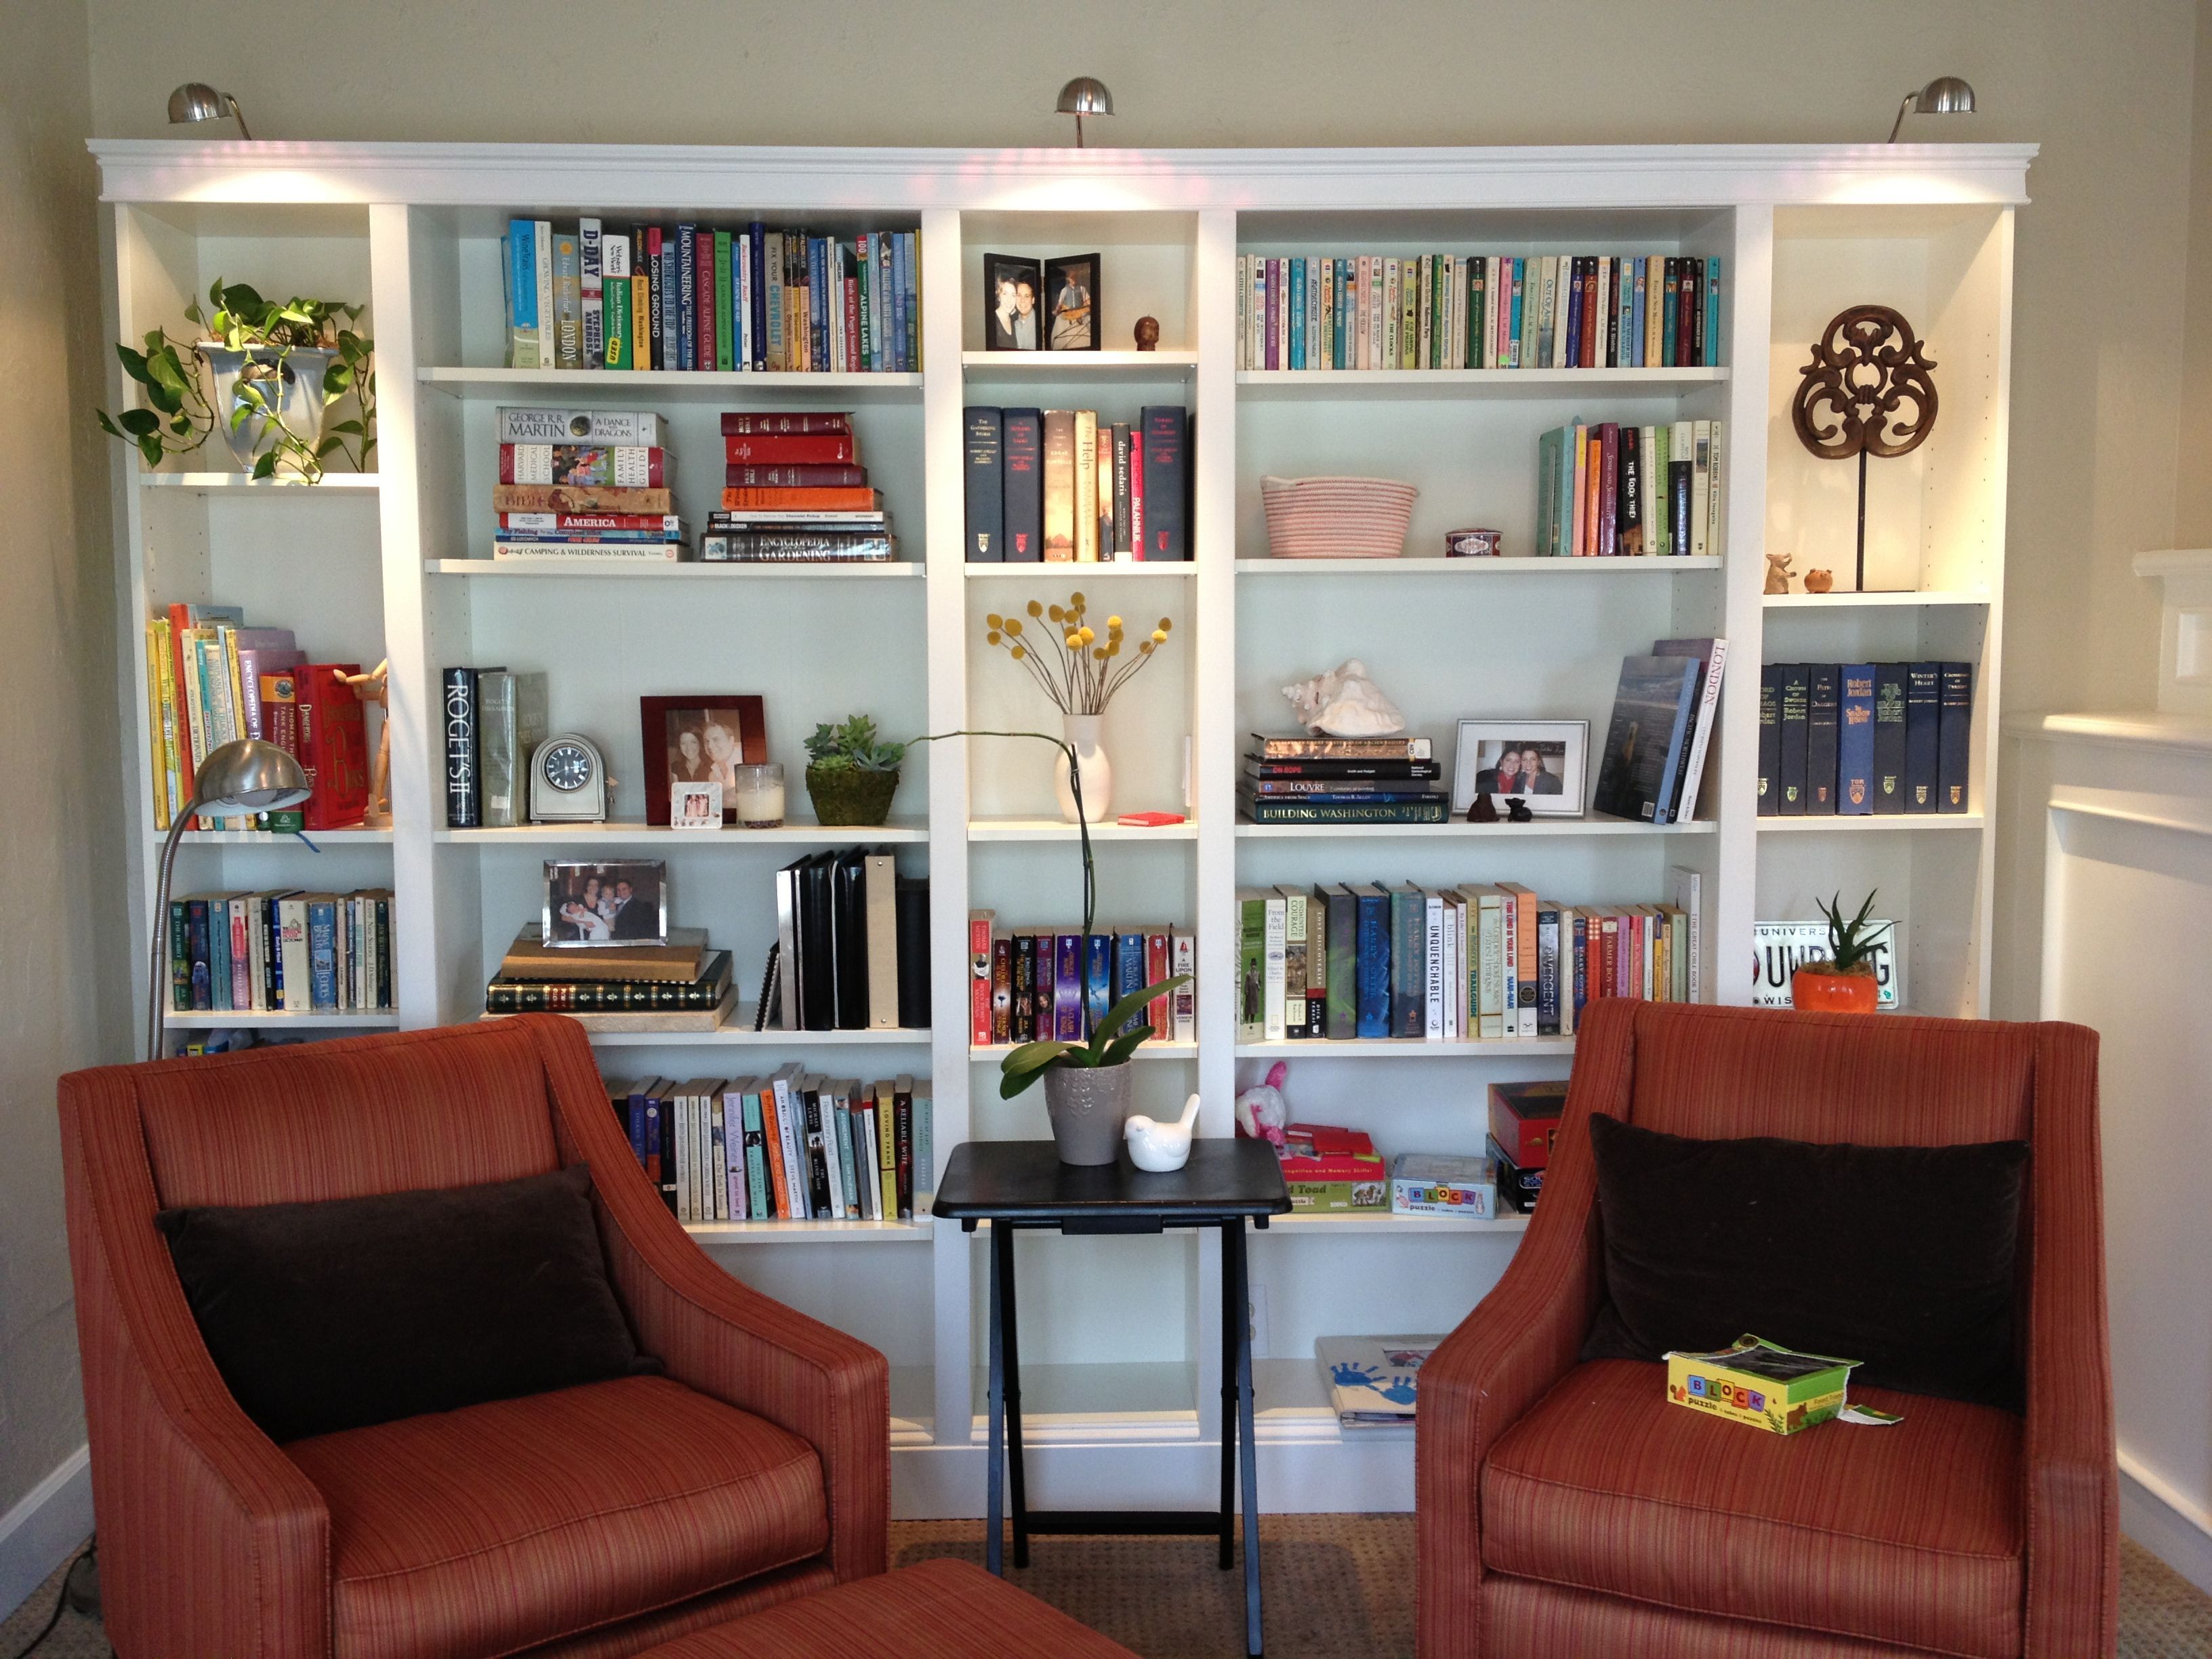 Libreria A Muro Moderna Ikea ikea billy bookcases - love the lights & moulding! need to